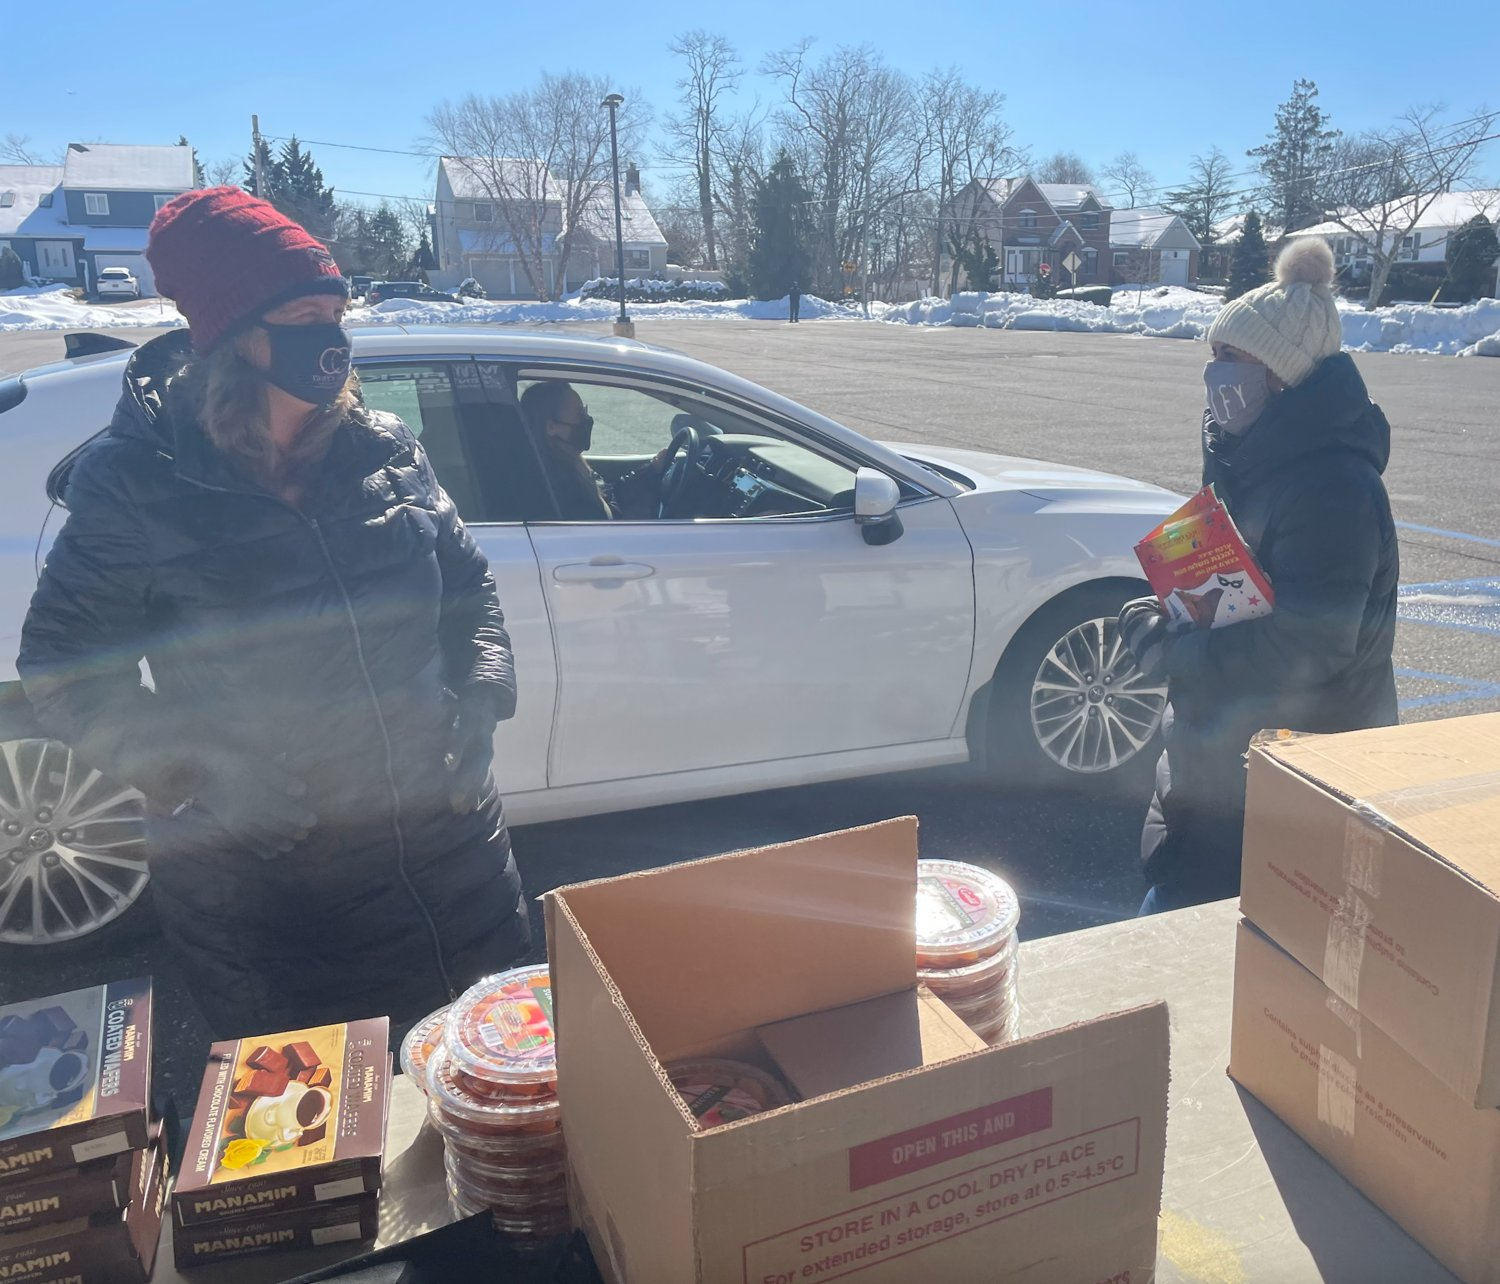 On Feb. 21, Merrick Jewish Centre volunteers distributed shalach manot packages to hundreds of congregants so they could celebrate Purim in style.